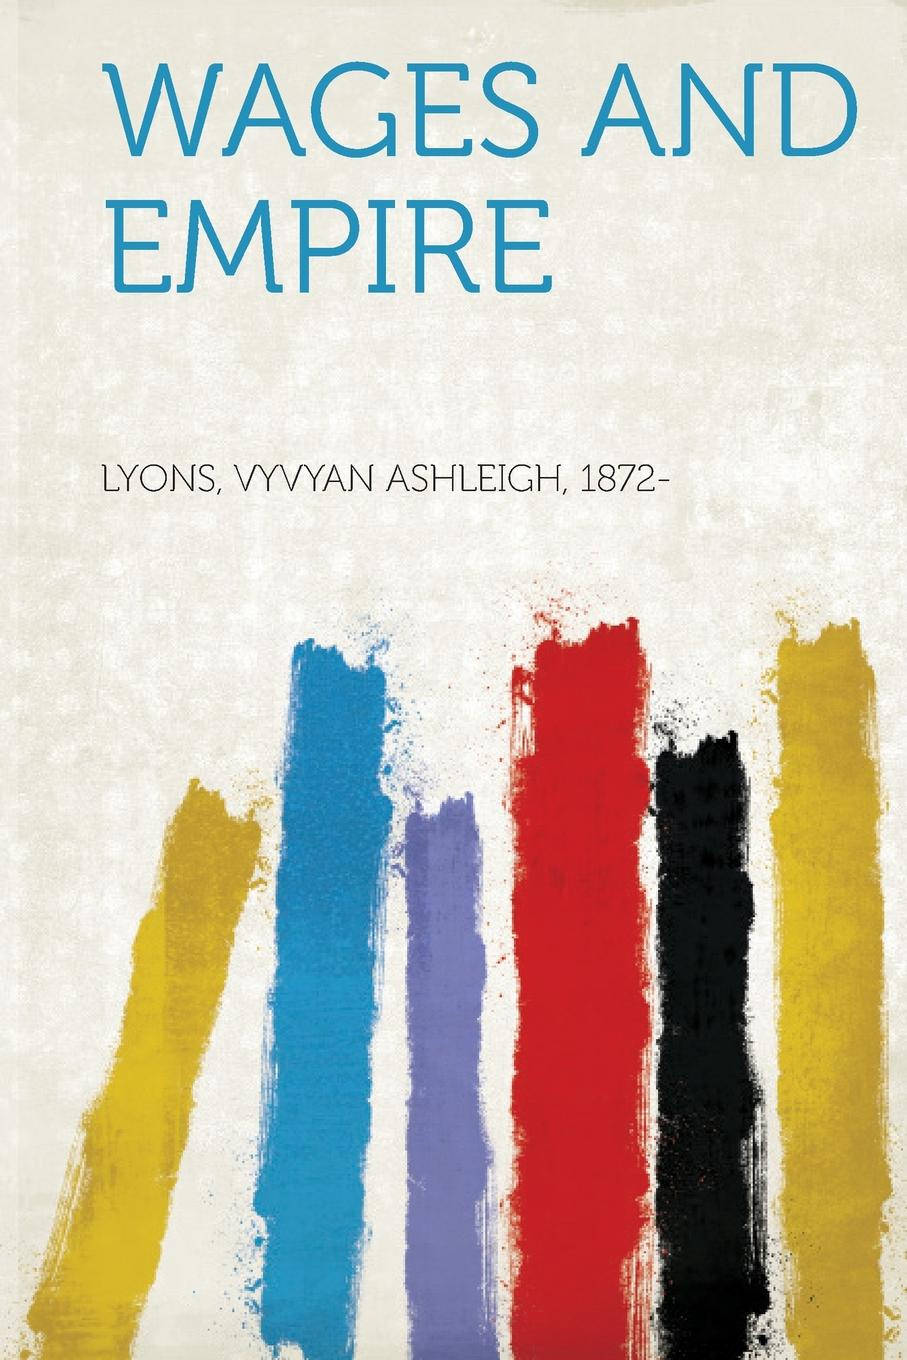 Lyons Vyvyan Ashleigh 1872- Wages and Empire